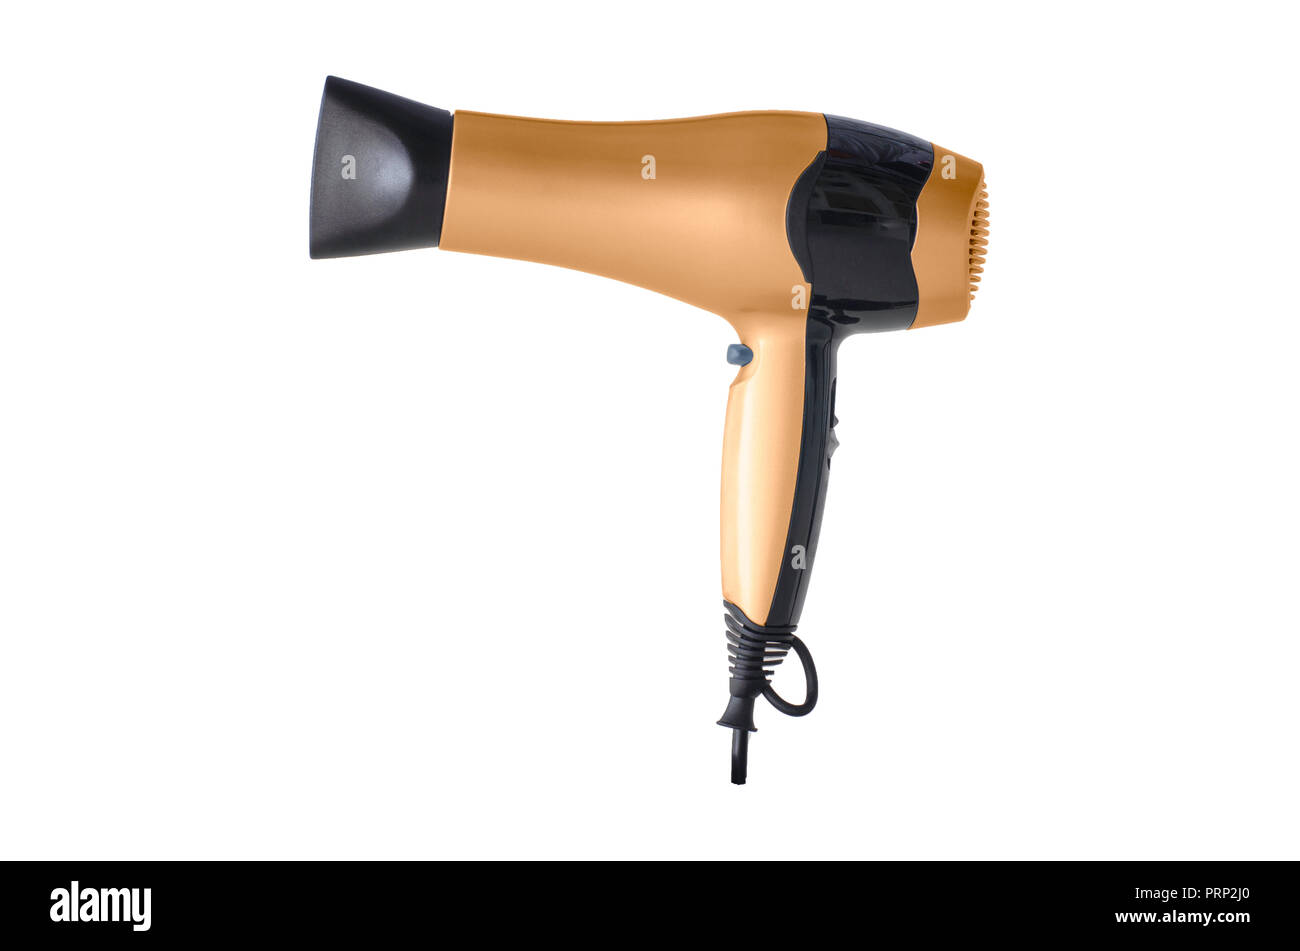 Hair blower drier orange isolated against plain white background - Stock Image